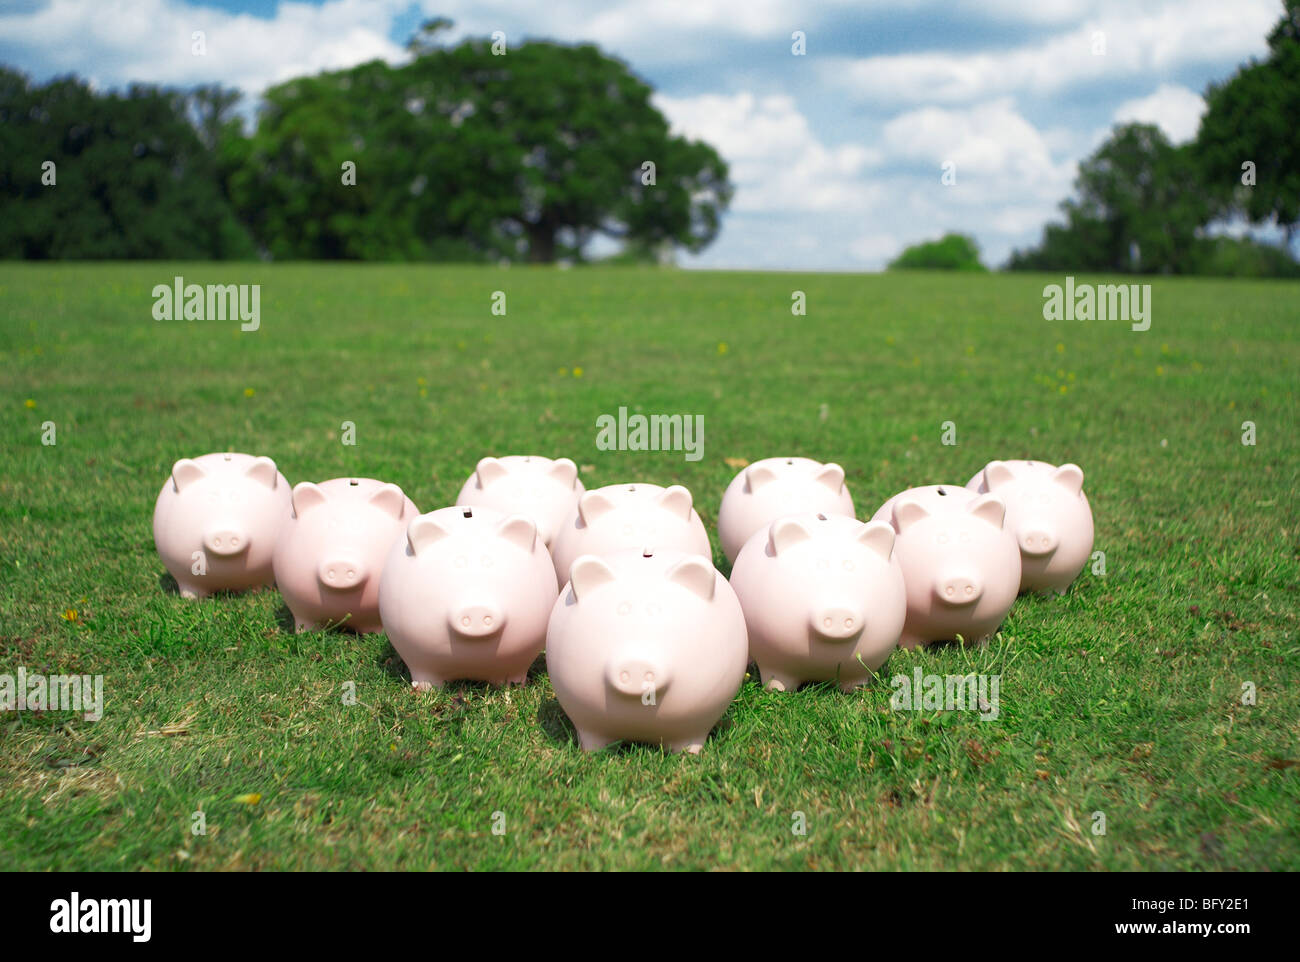 piggy banks in a park - Stock Image